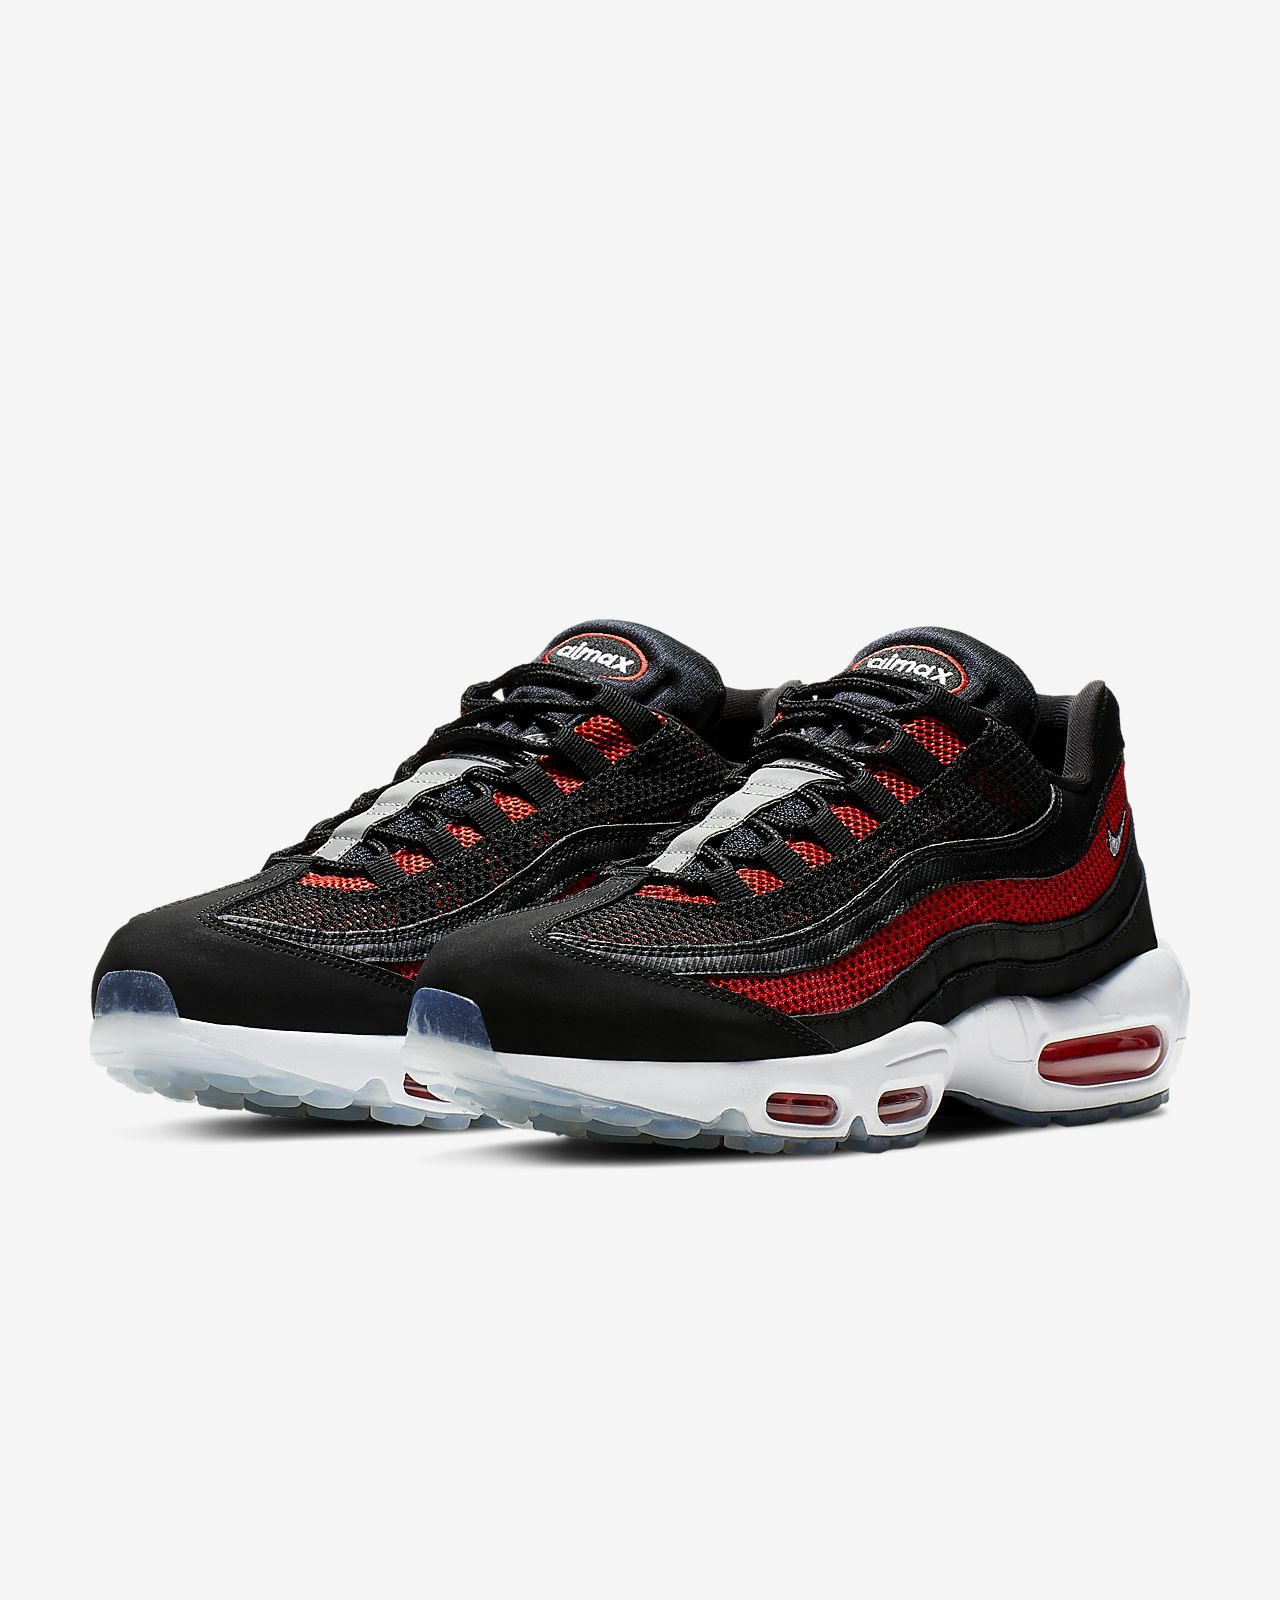 online retailer e1326 7d14c ... Nike Air Max 95 Essential Men s Shoe